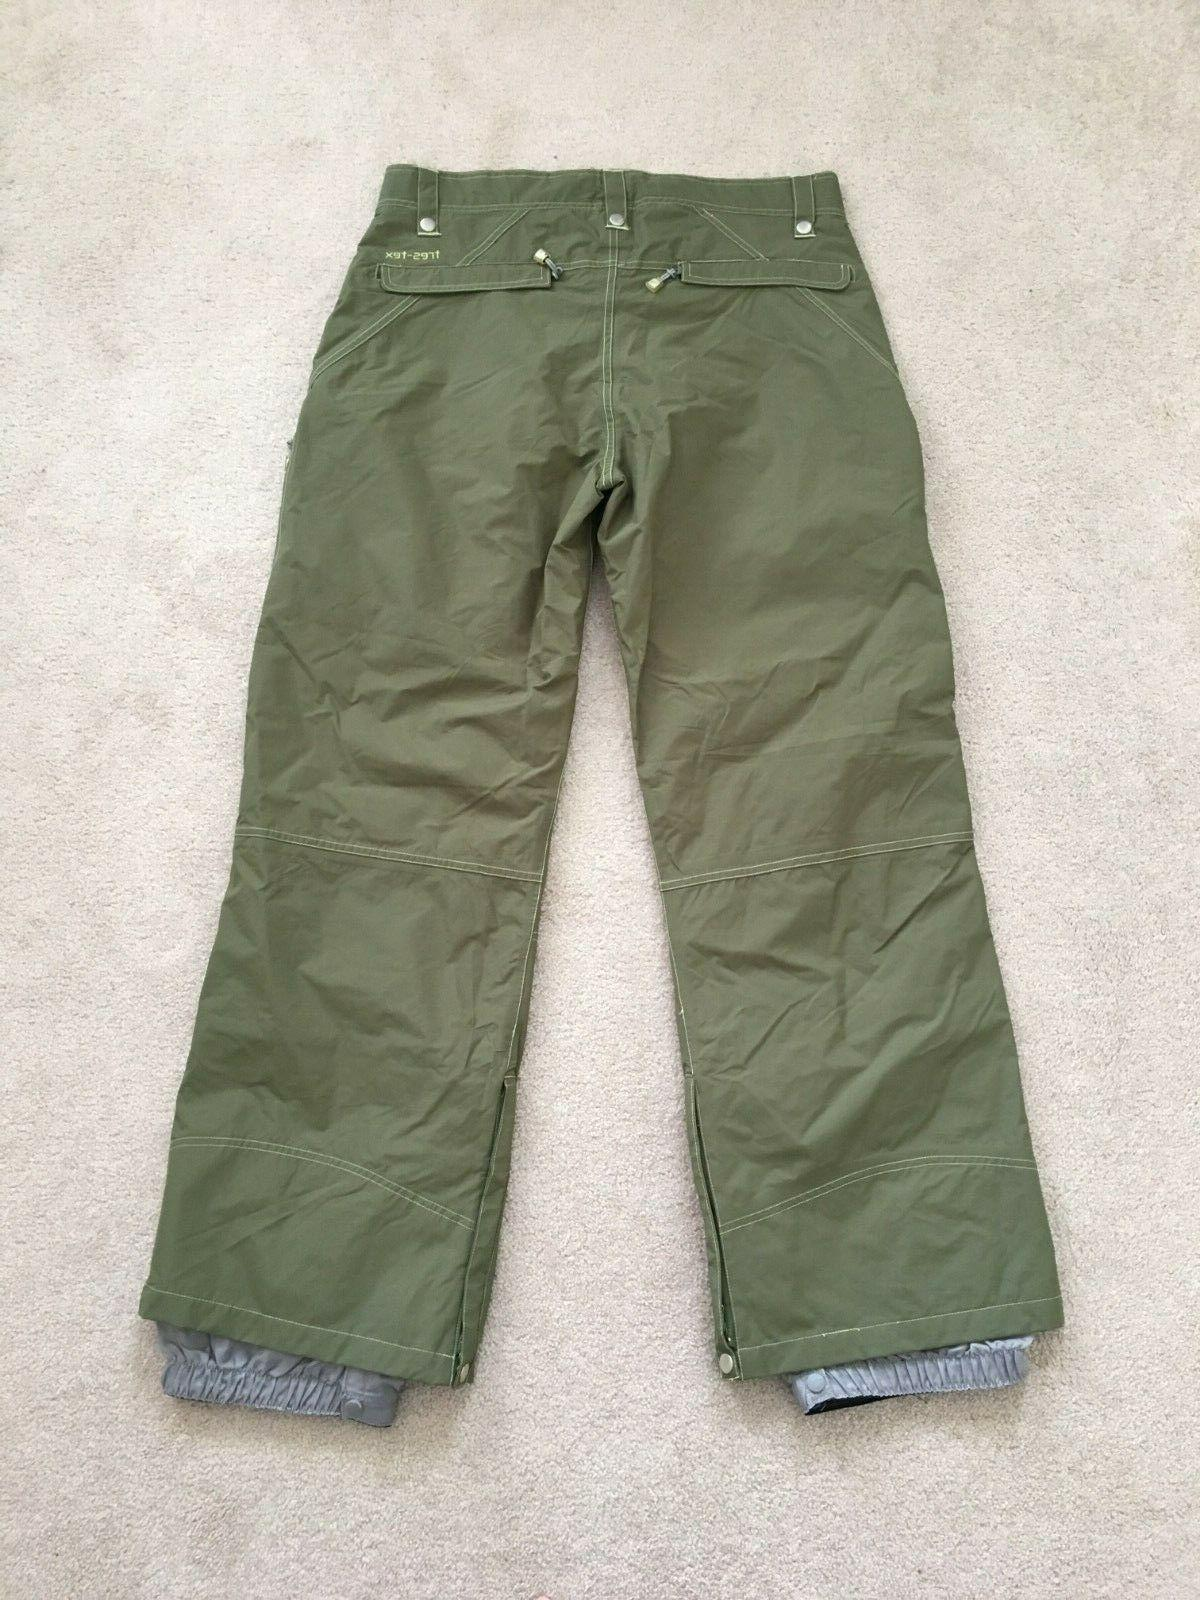 Trespass Redfield and Wind Ski/Snowboard Pants-New!!!!